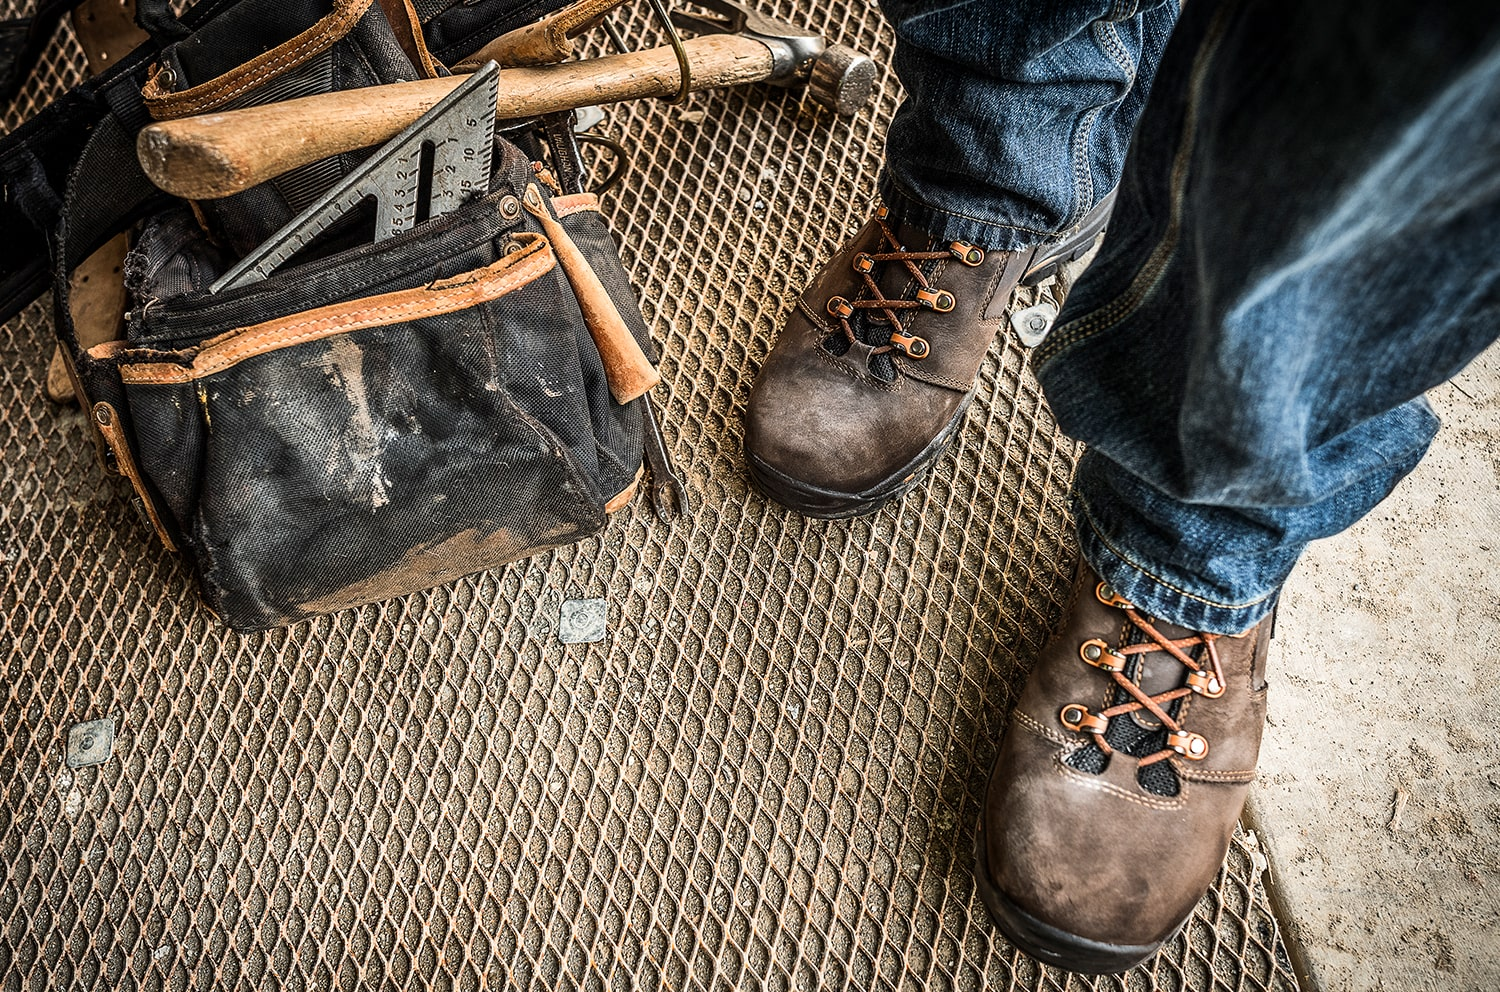 _How to Care for your Work Boots